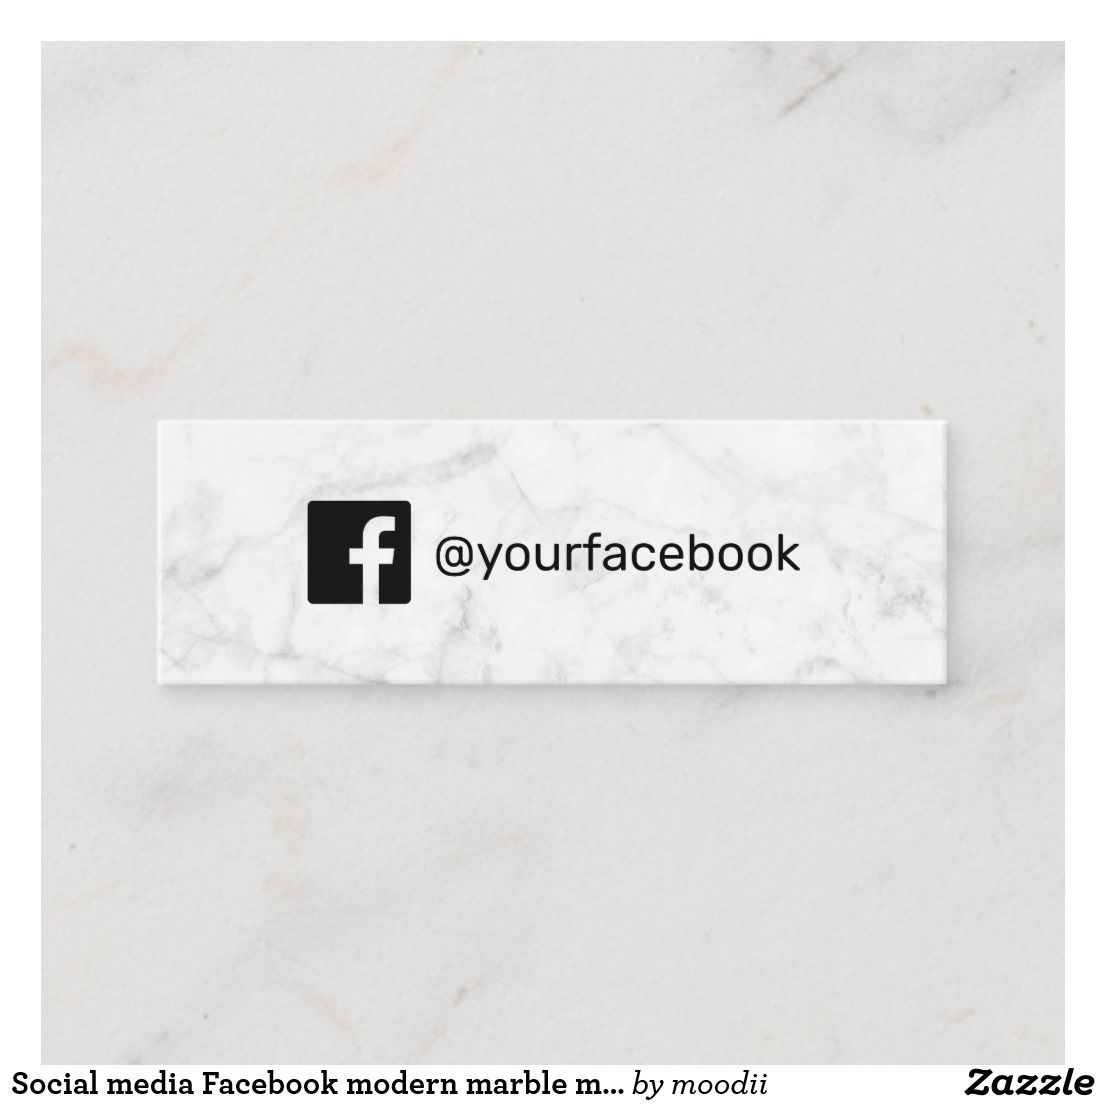 Charmant Social Media Facebook Modern Marble Minimalist Calling Card Calling Cards,  Business Cards, Minimalist,